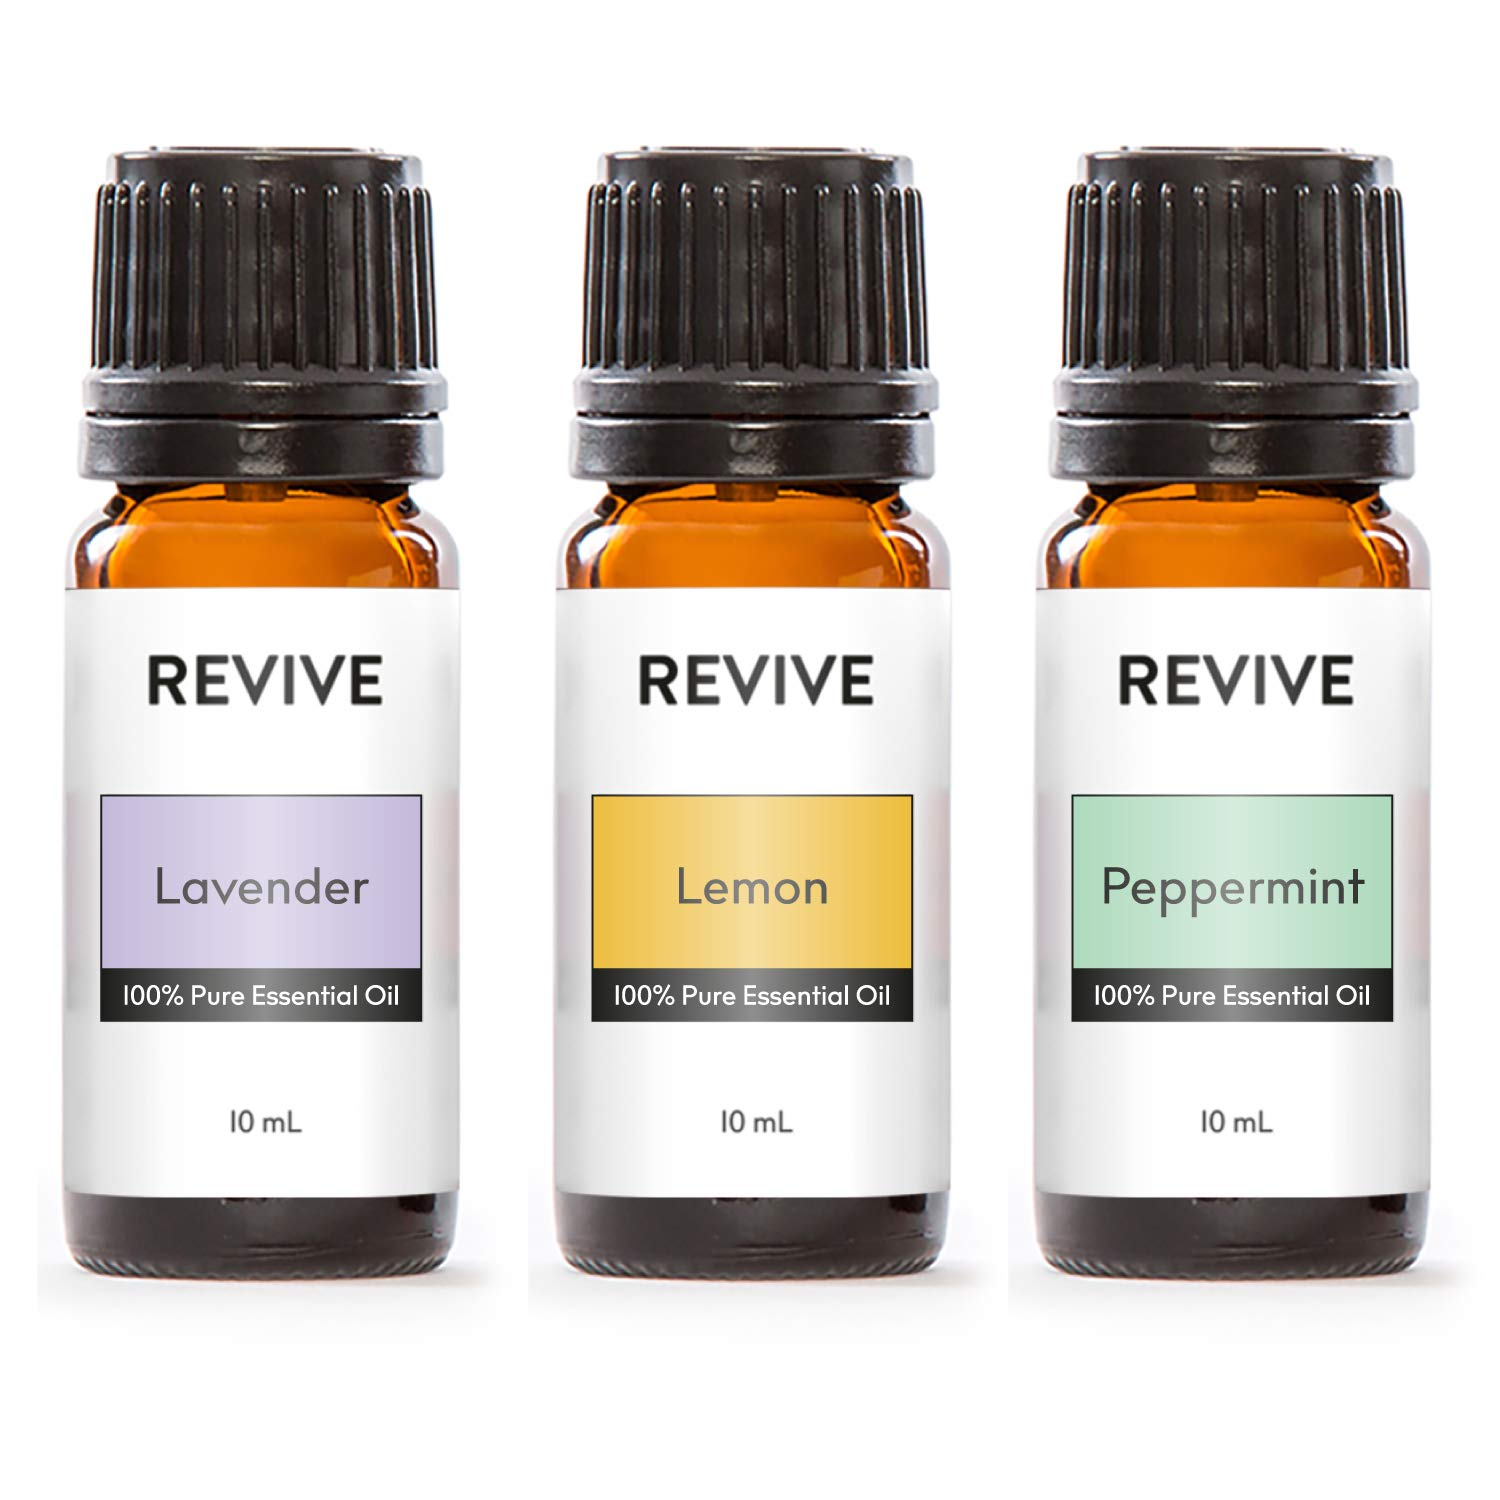 revive vs young living